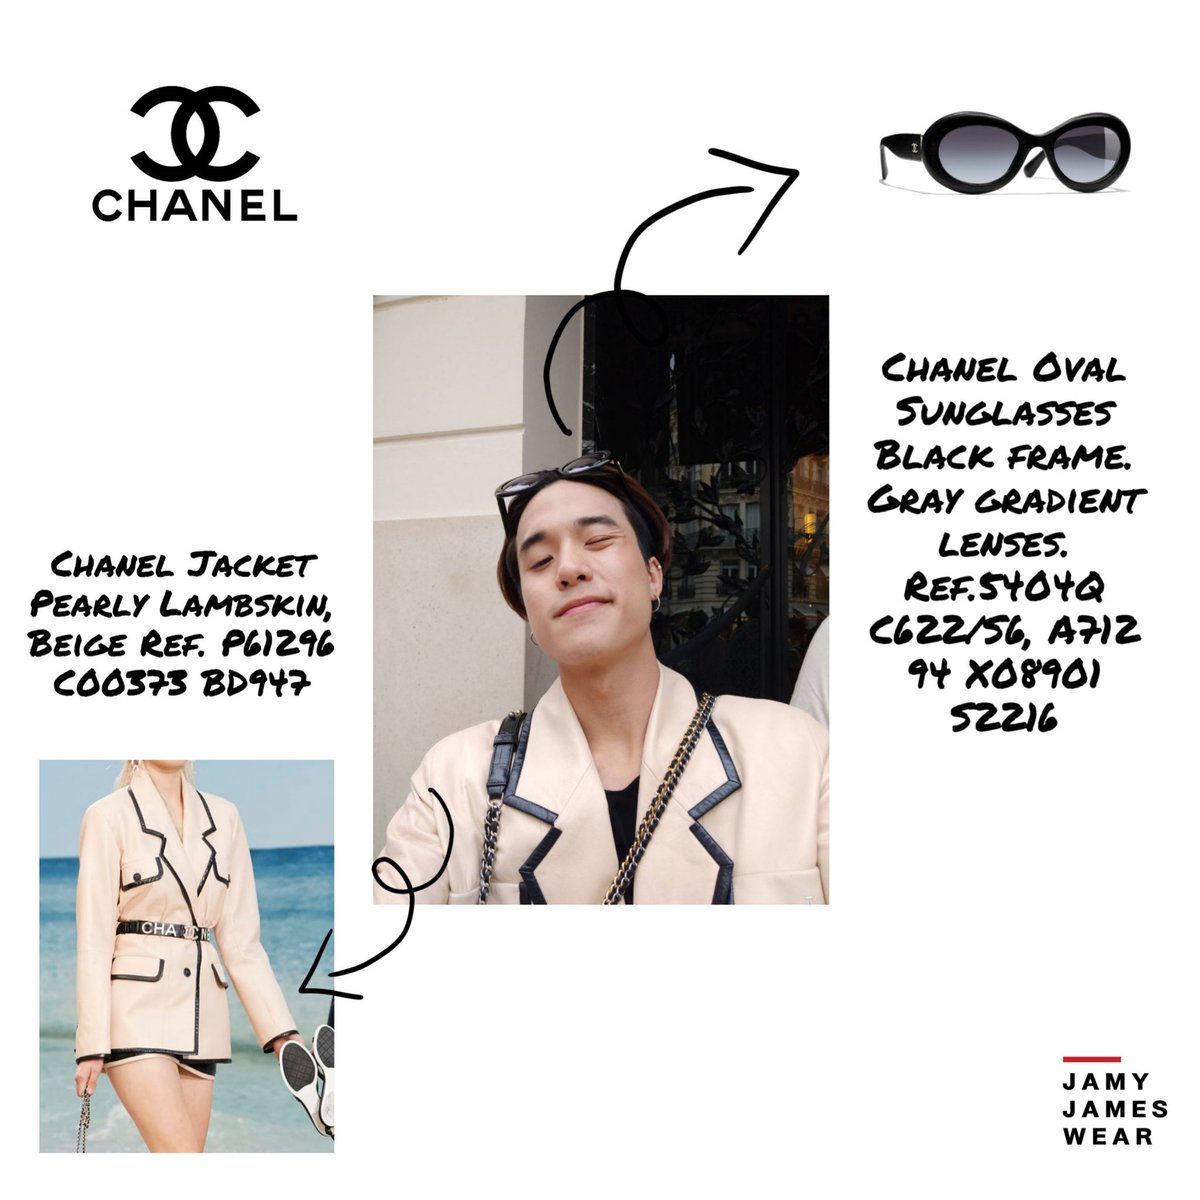 b2b176db05679 chanelcruisewithjmj hashtag on Twitter